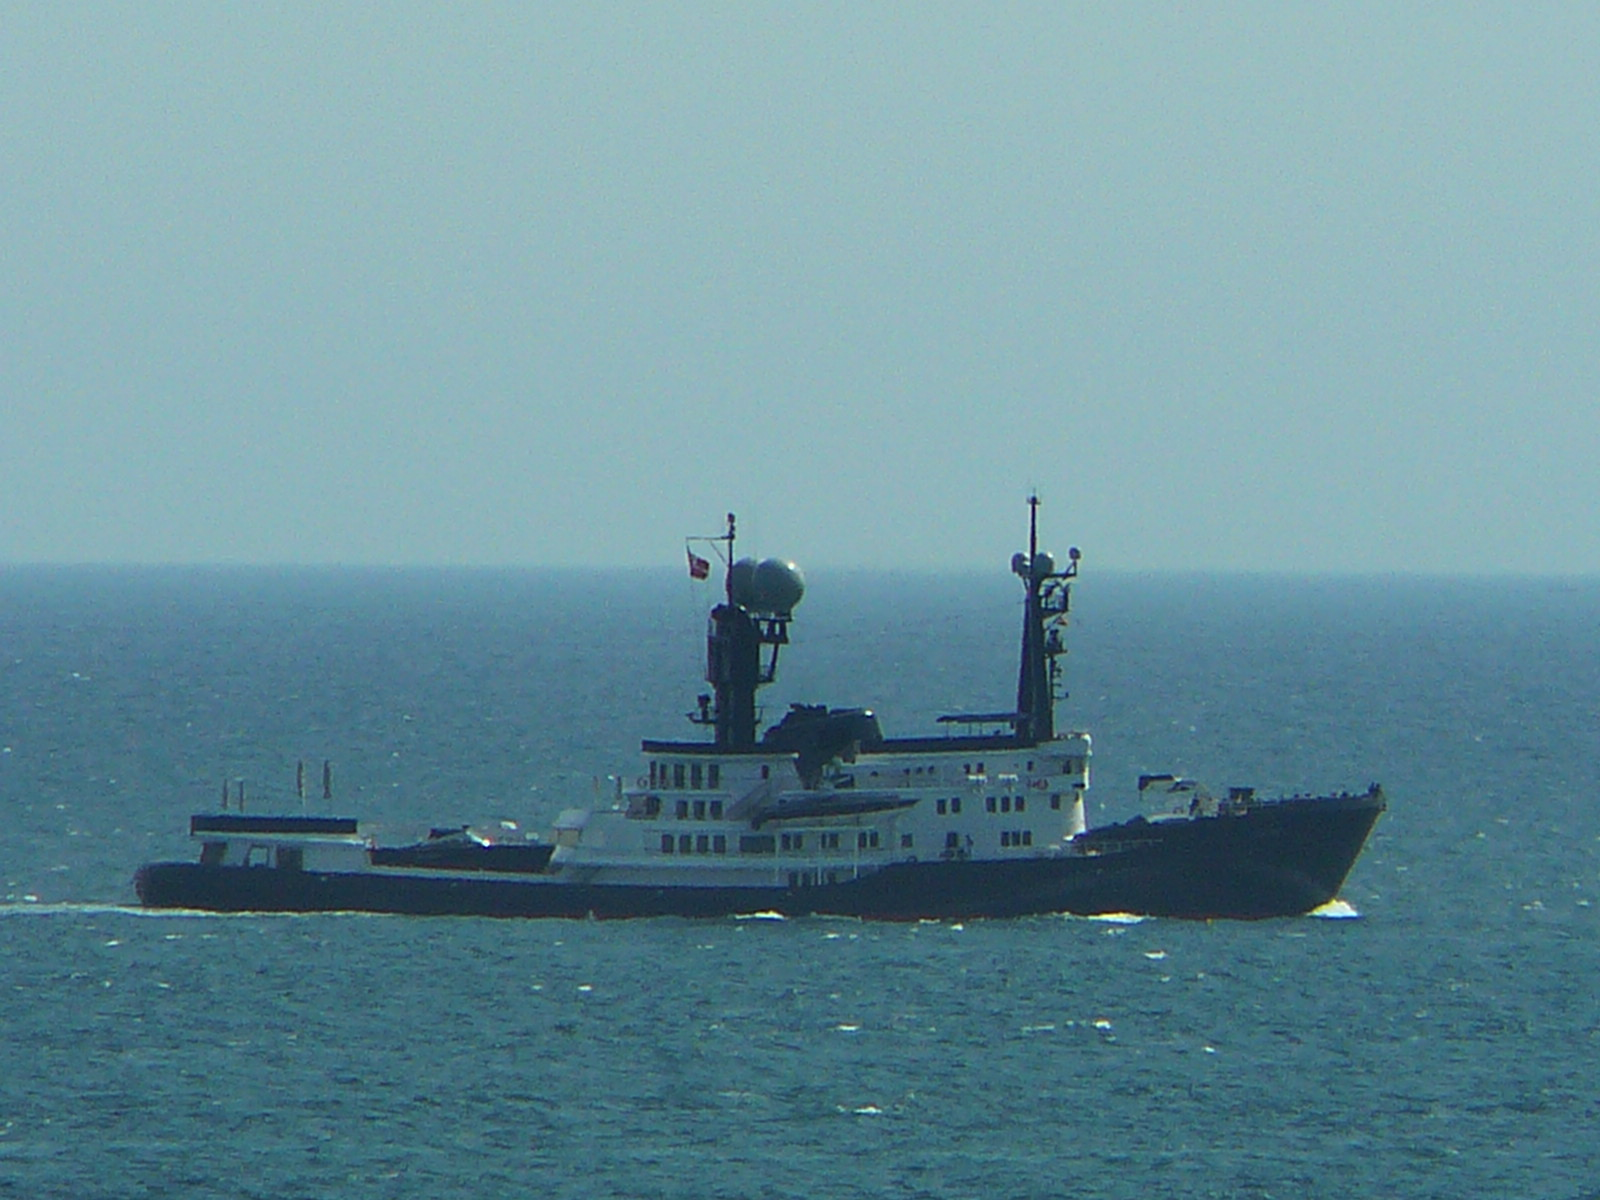 Us SECUIRTY OFF COAST OF MARBELLA